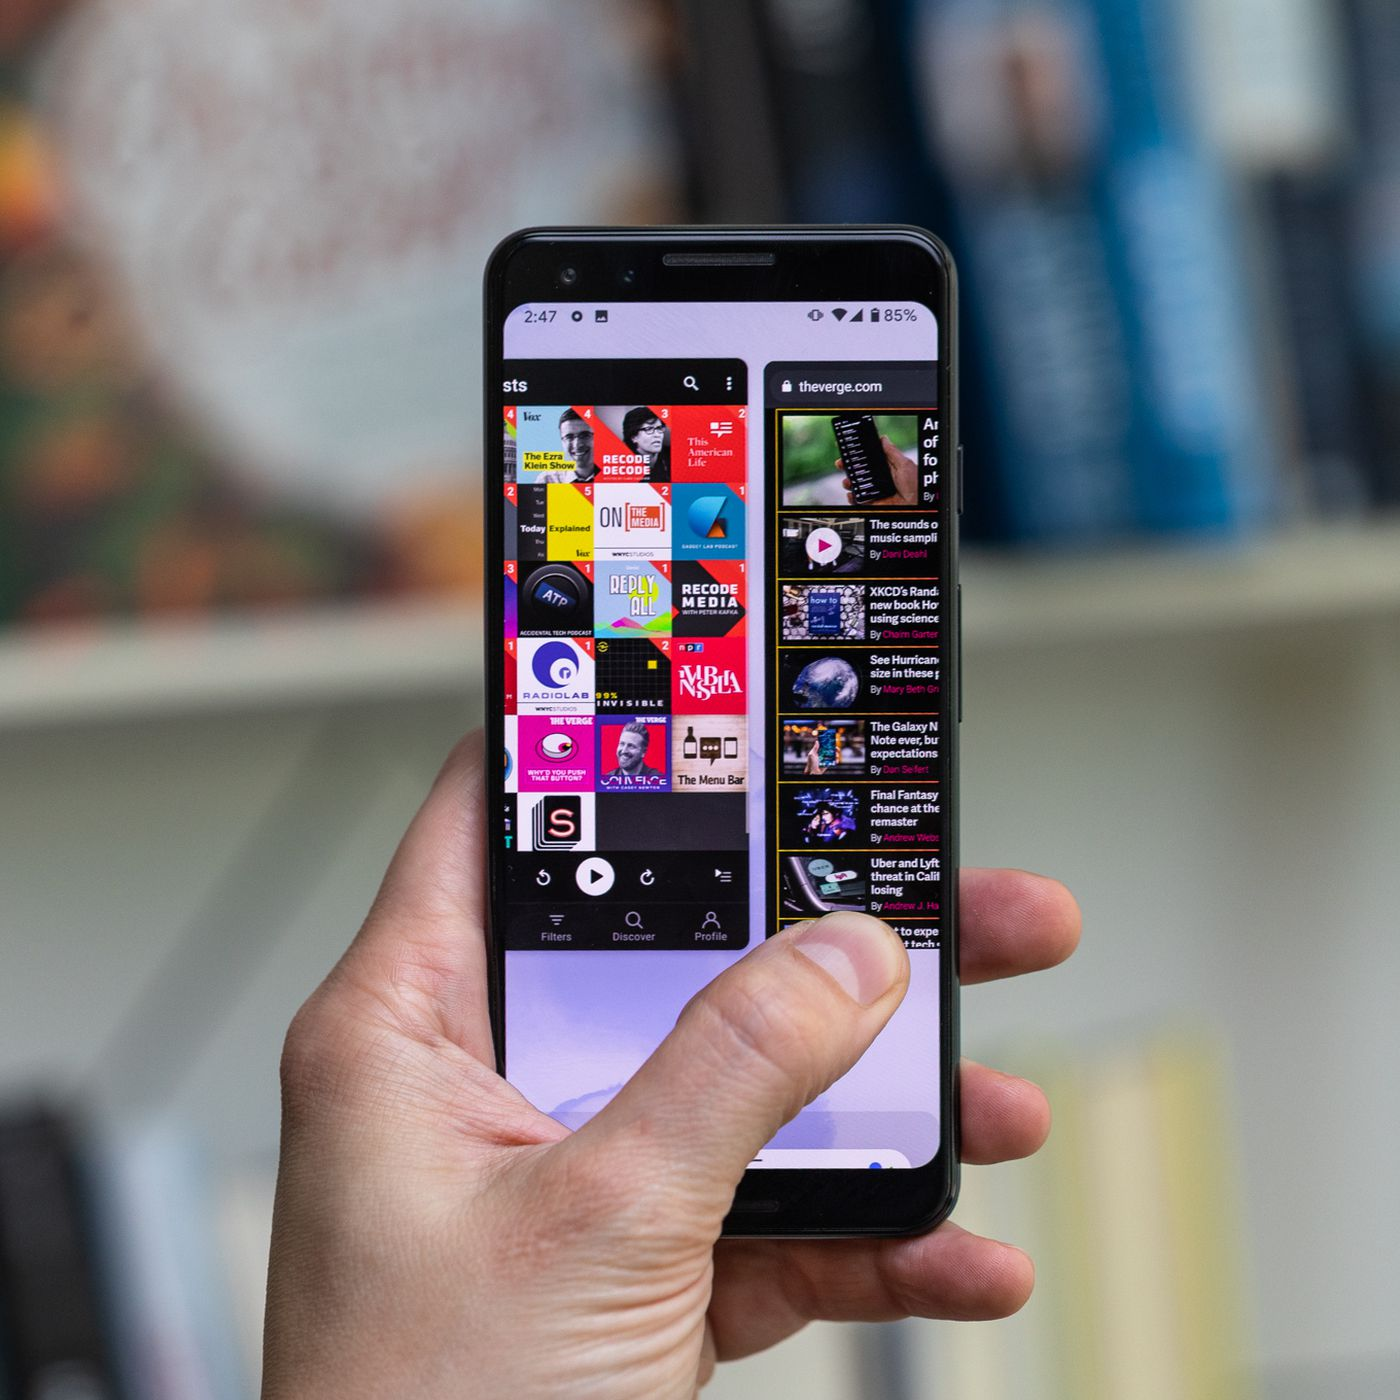 Android 10 review: new gestures, dark theme, and privacy